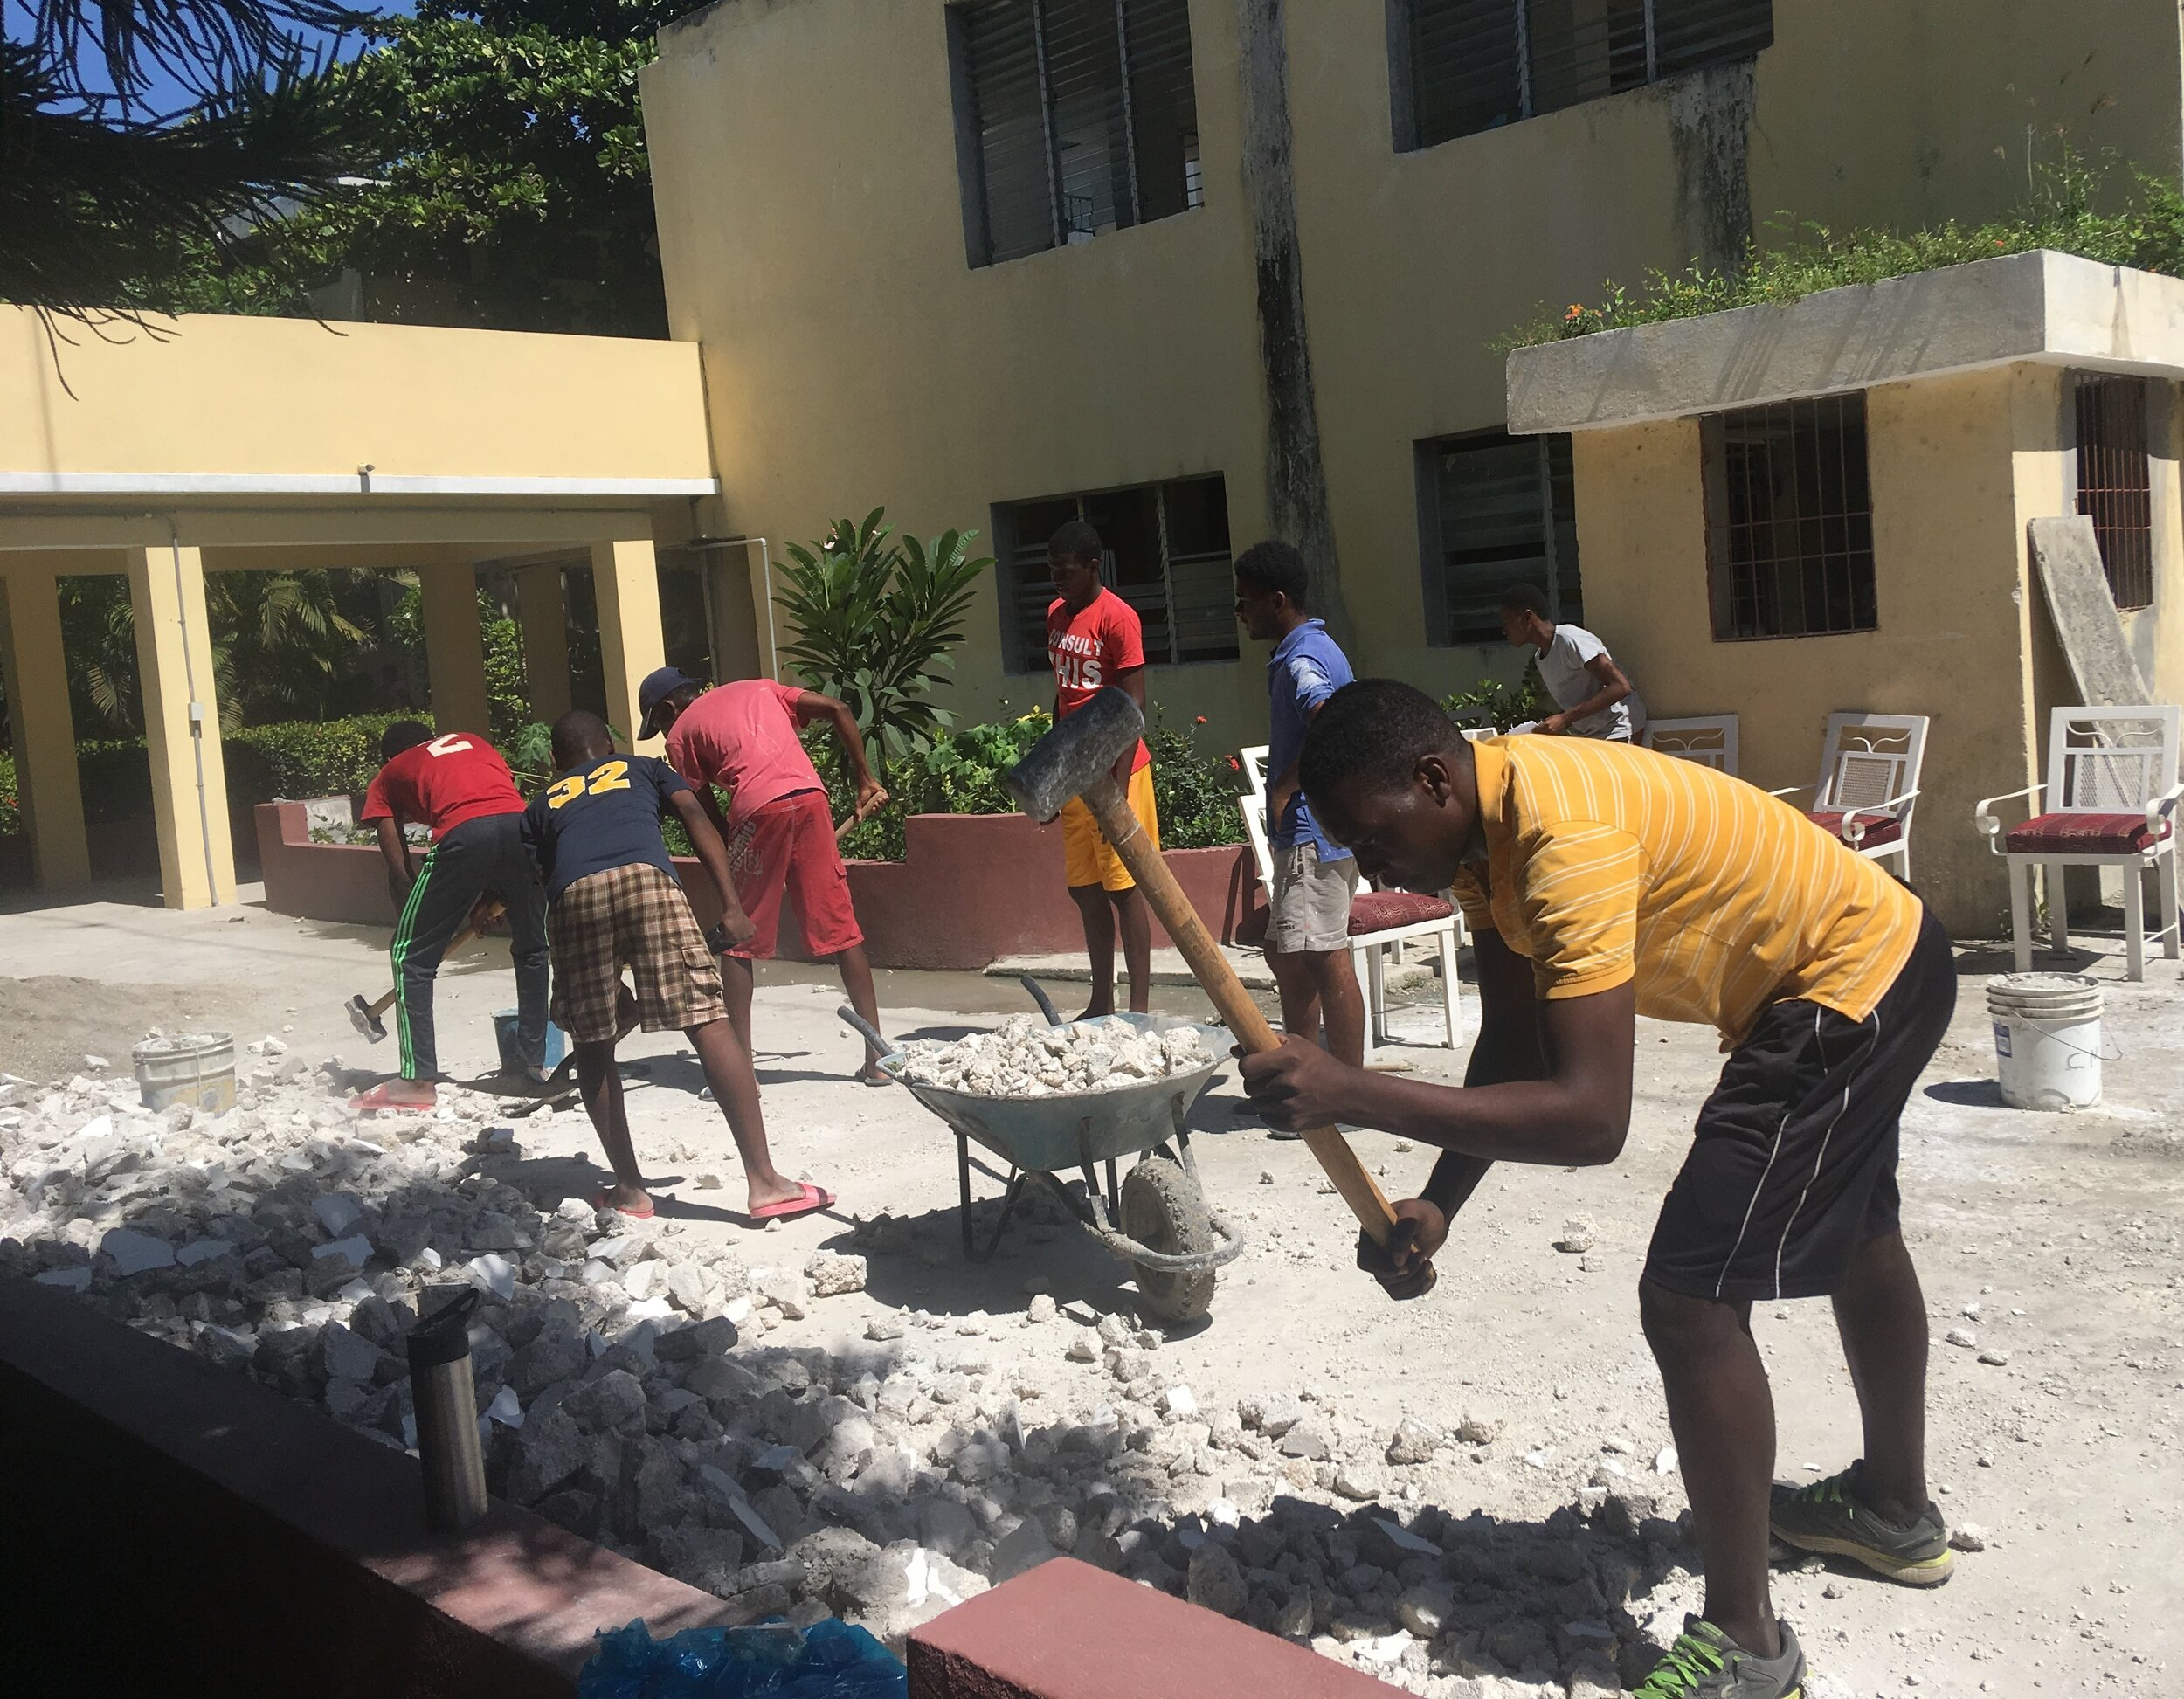 Keslin Augustin (LCS '16) works breaking rocks on the Louverture Cleary School Santo 5 campus.